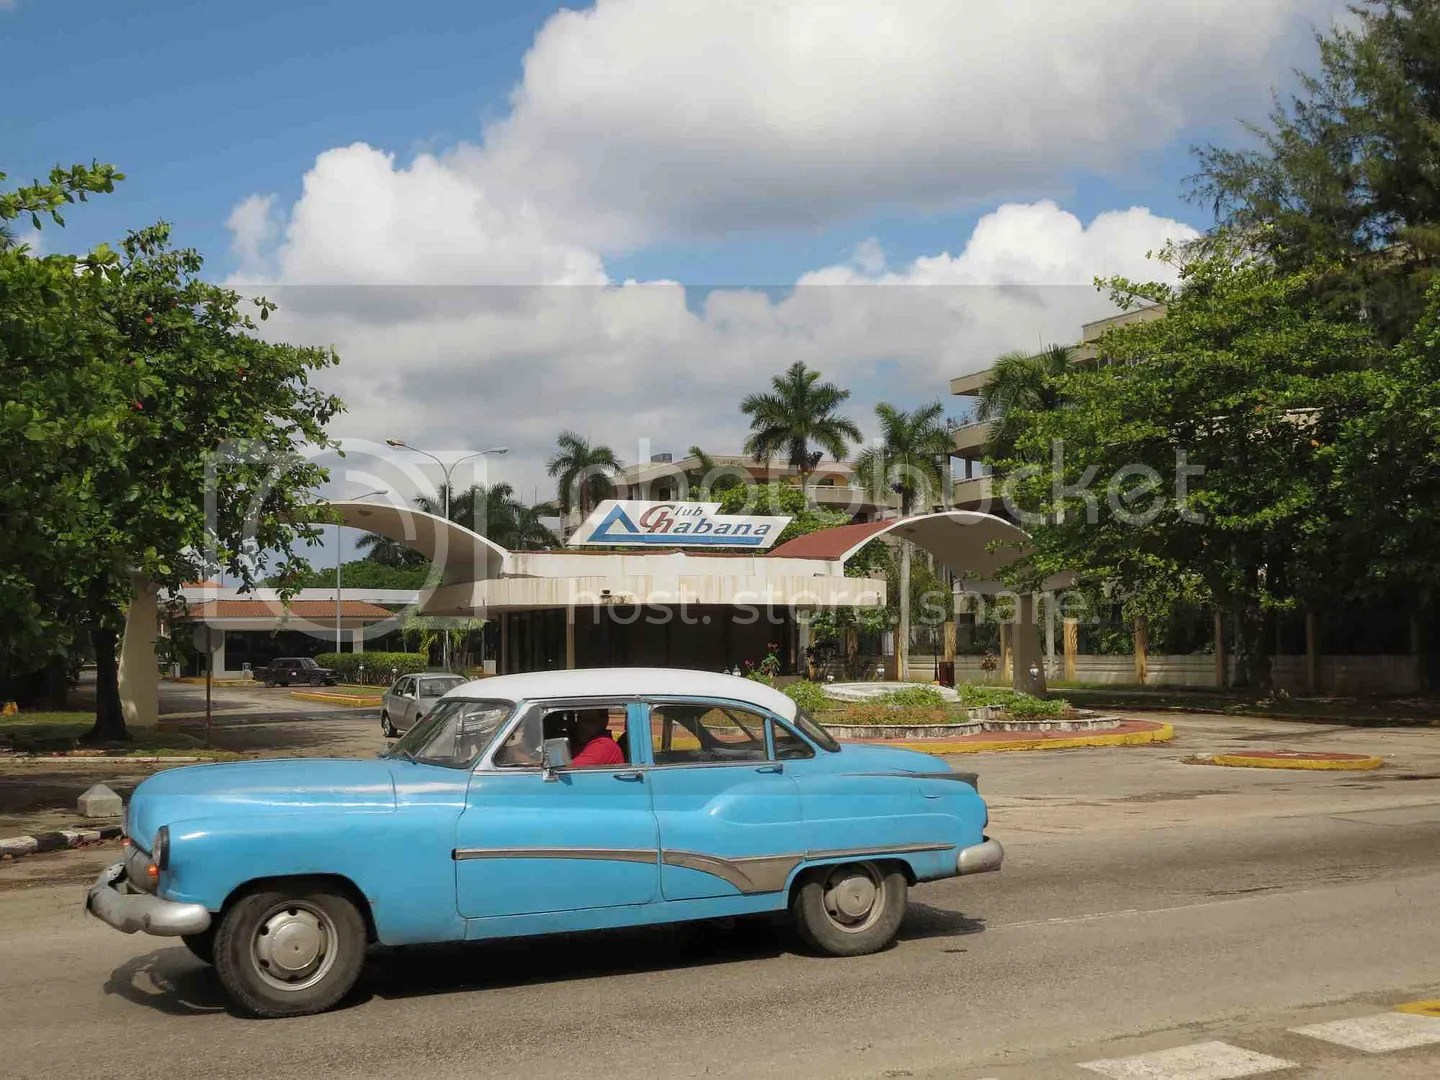 Club Habana sign and old car